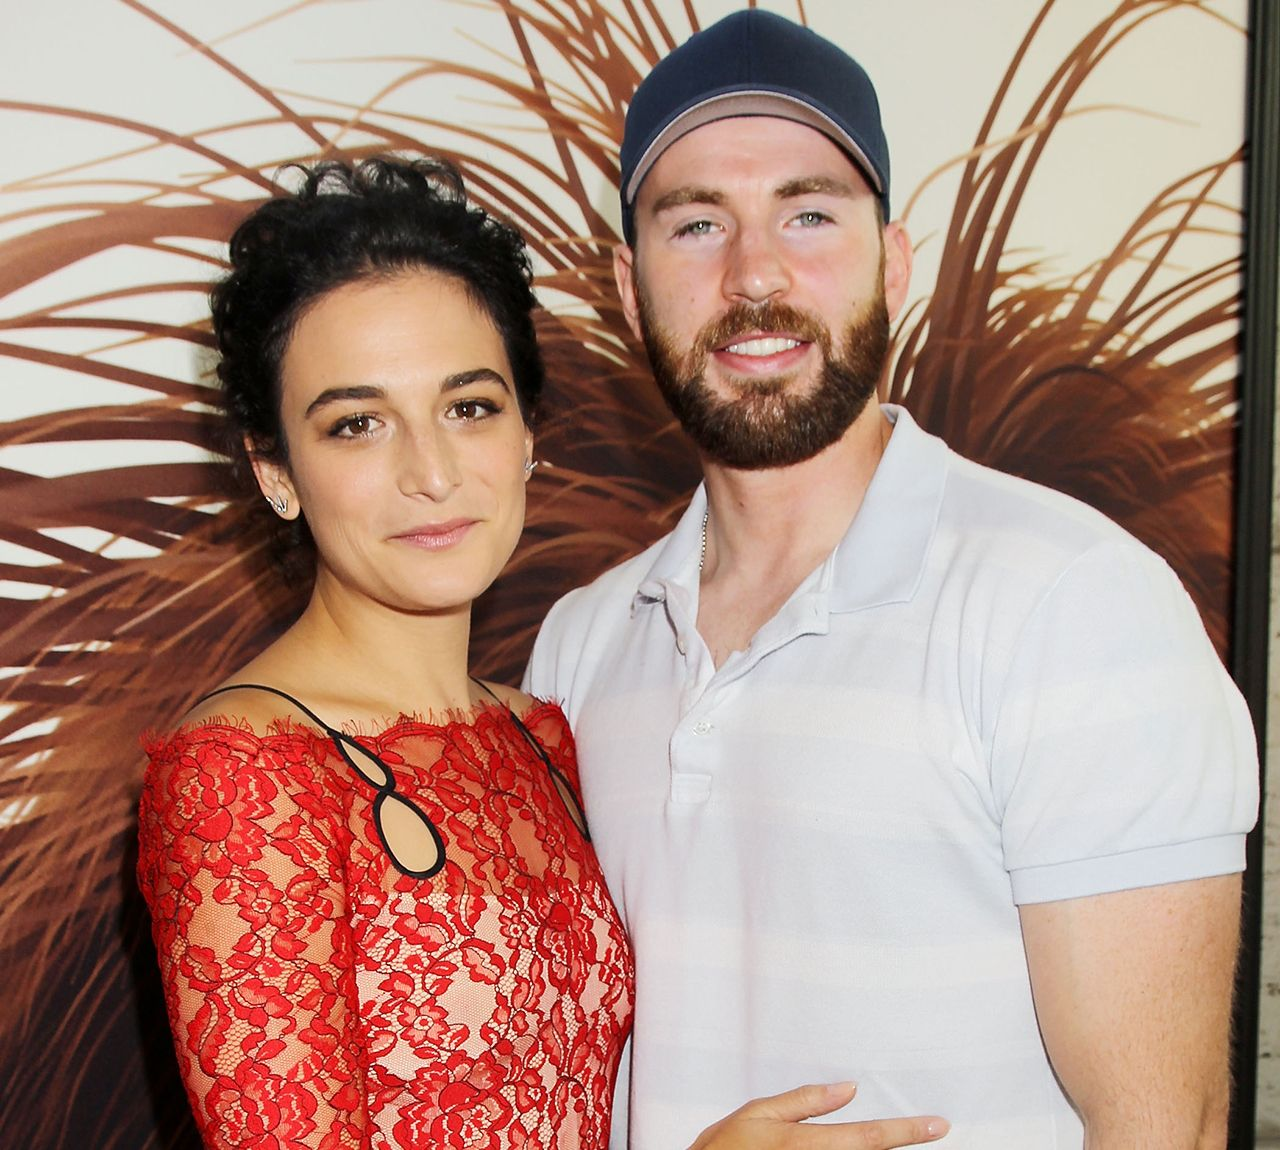 Jenny Slate Opens Up About Her Unlikely Romance With Chris Evans #CaptainAmerica, #ChrisEvans, #JennySlate celebrityinsider.org #Hollywood #celebrityinsider #celebrities #celebrity #celebritynews